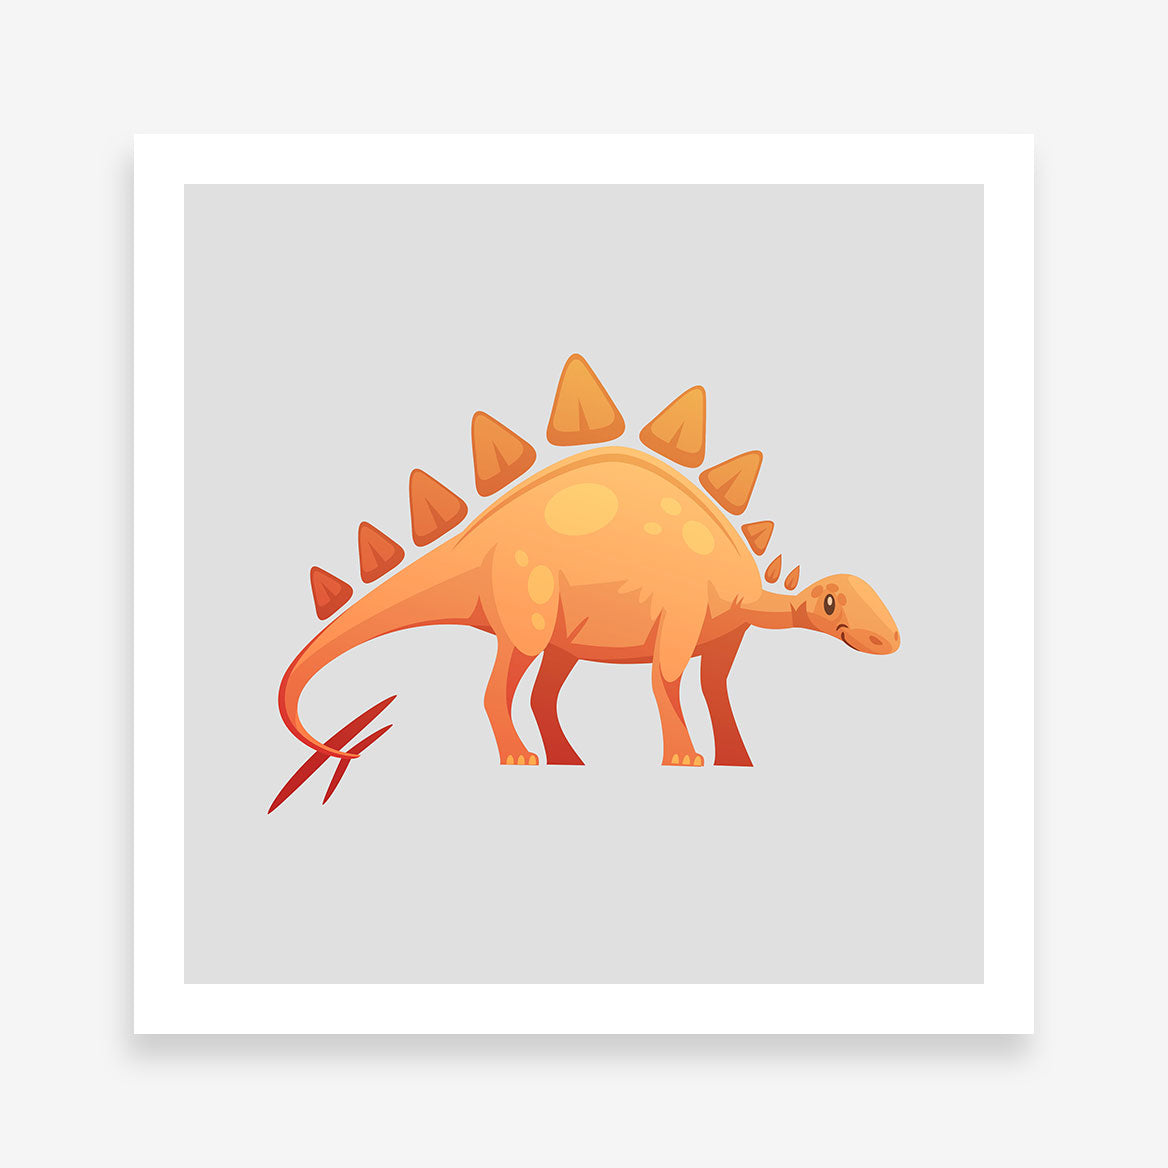 Poster print with a cute orange Stegosaurus dinosaur on grey background.